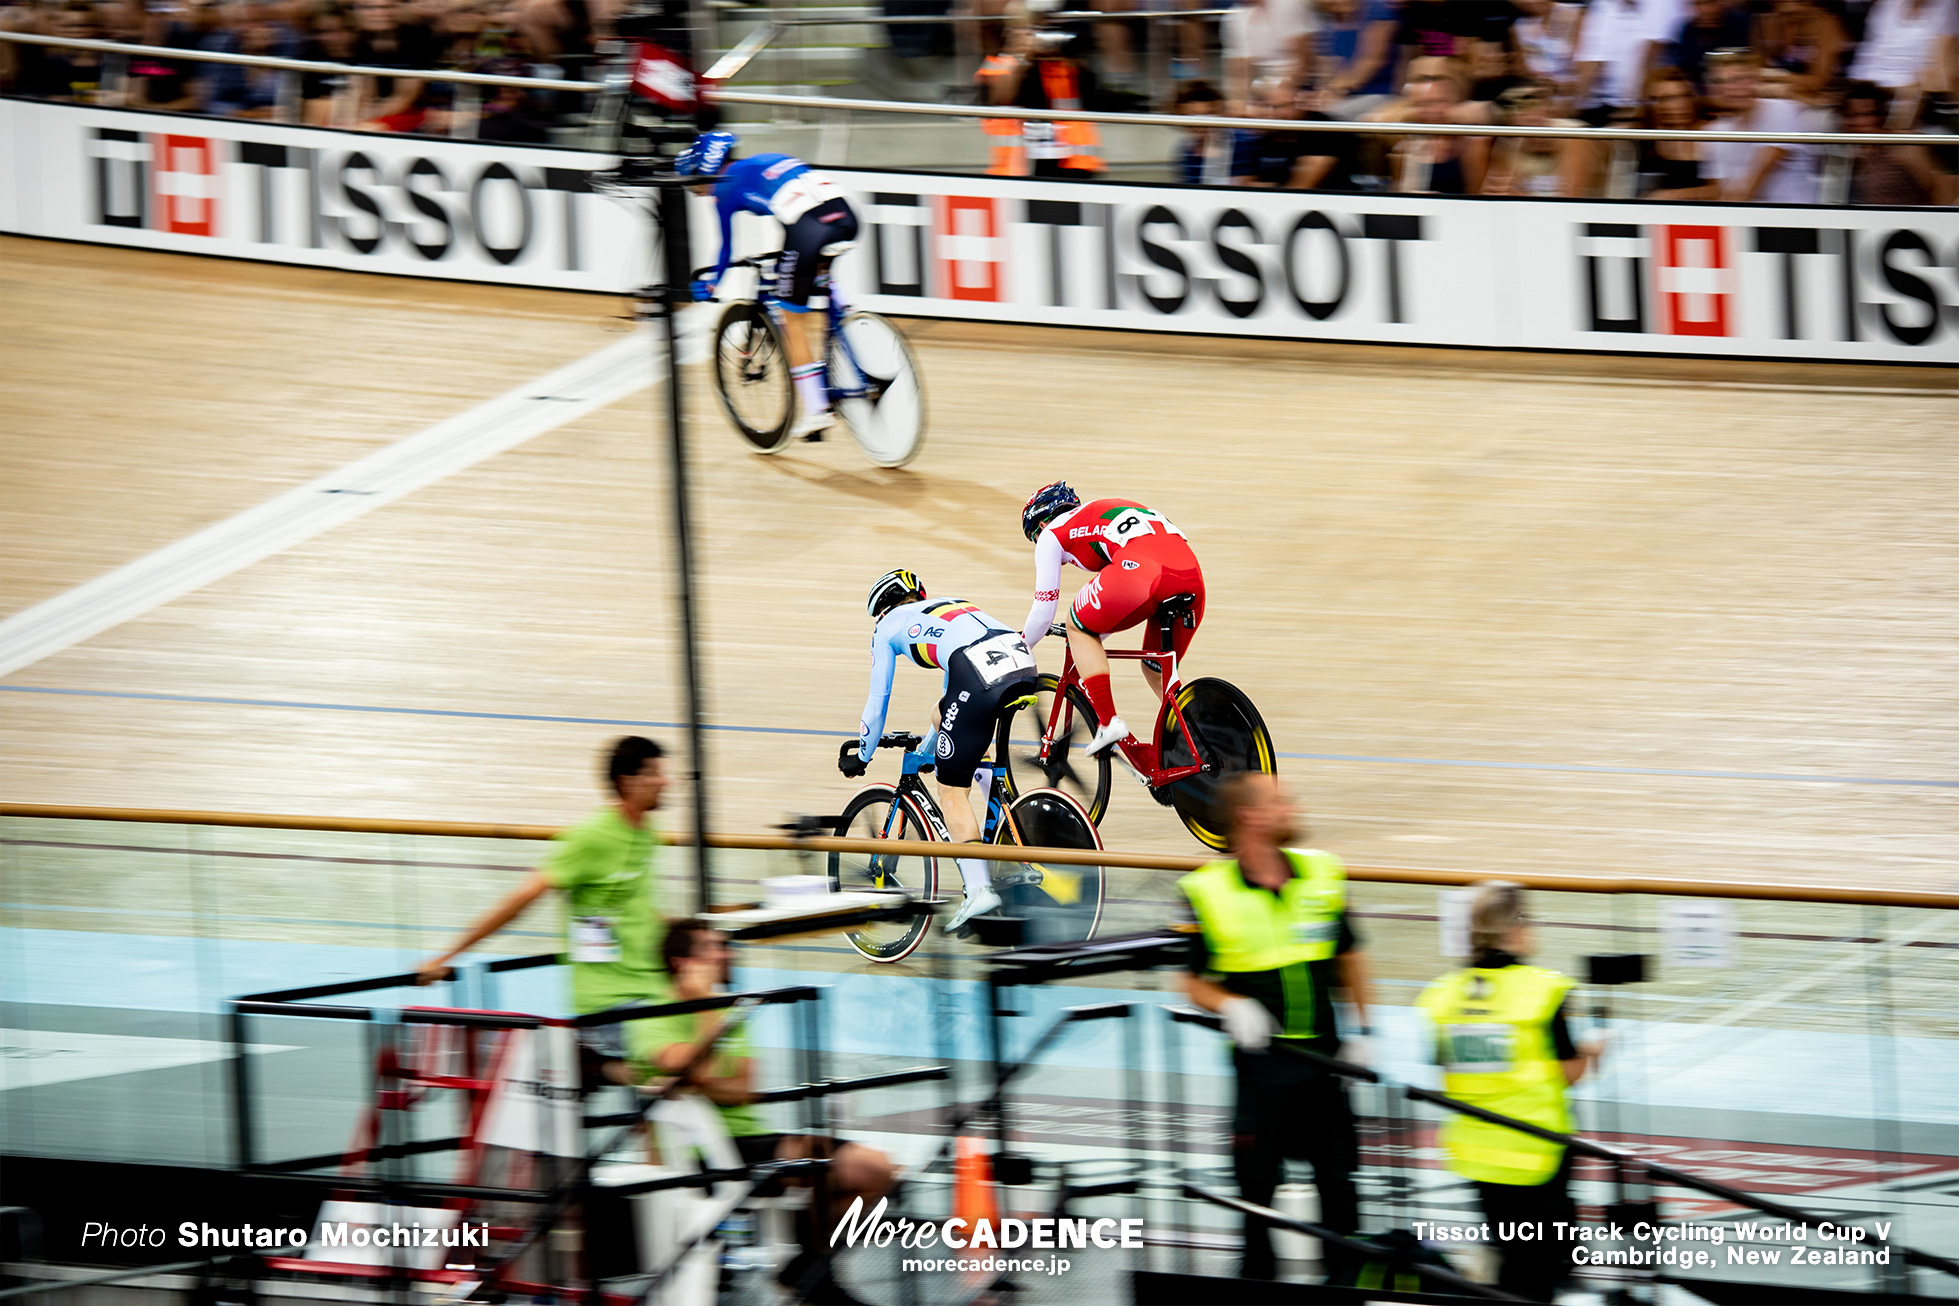 Women's Madison / Track Cycling World Cup V / Cambridge, New Zealand